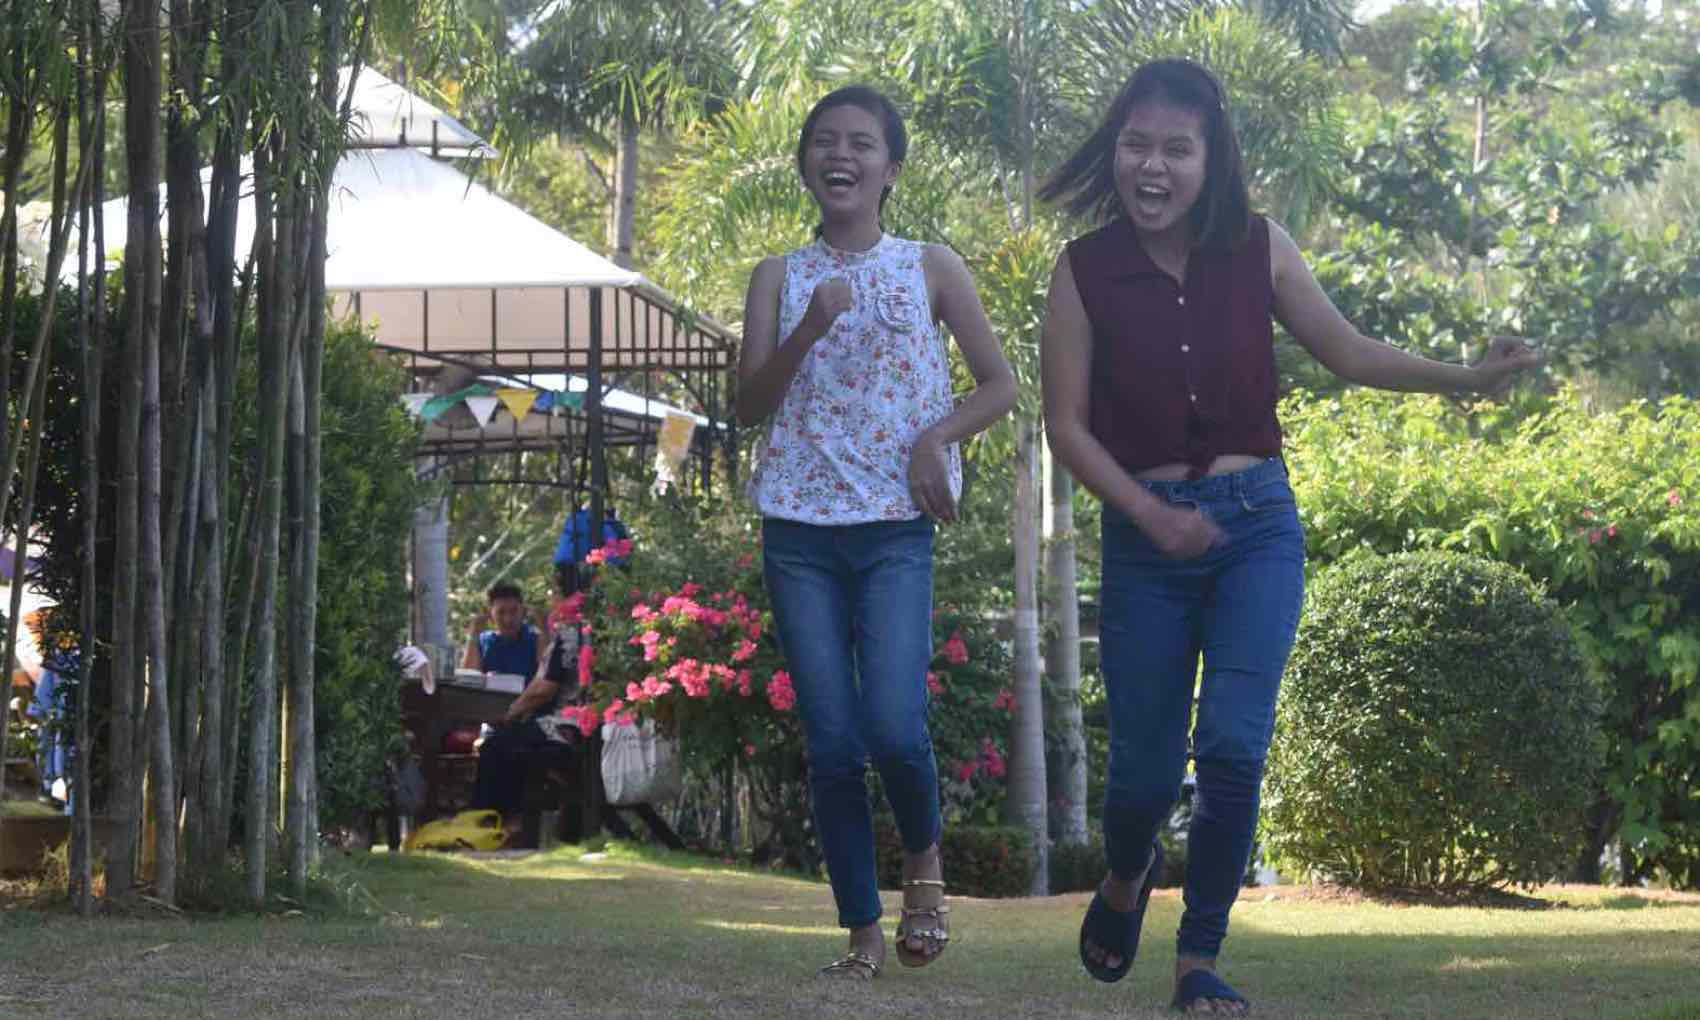 Mostly the people of Philippines are happy - as these two girl in city of Tacloban